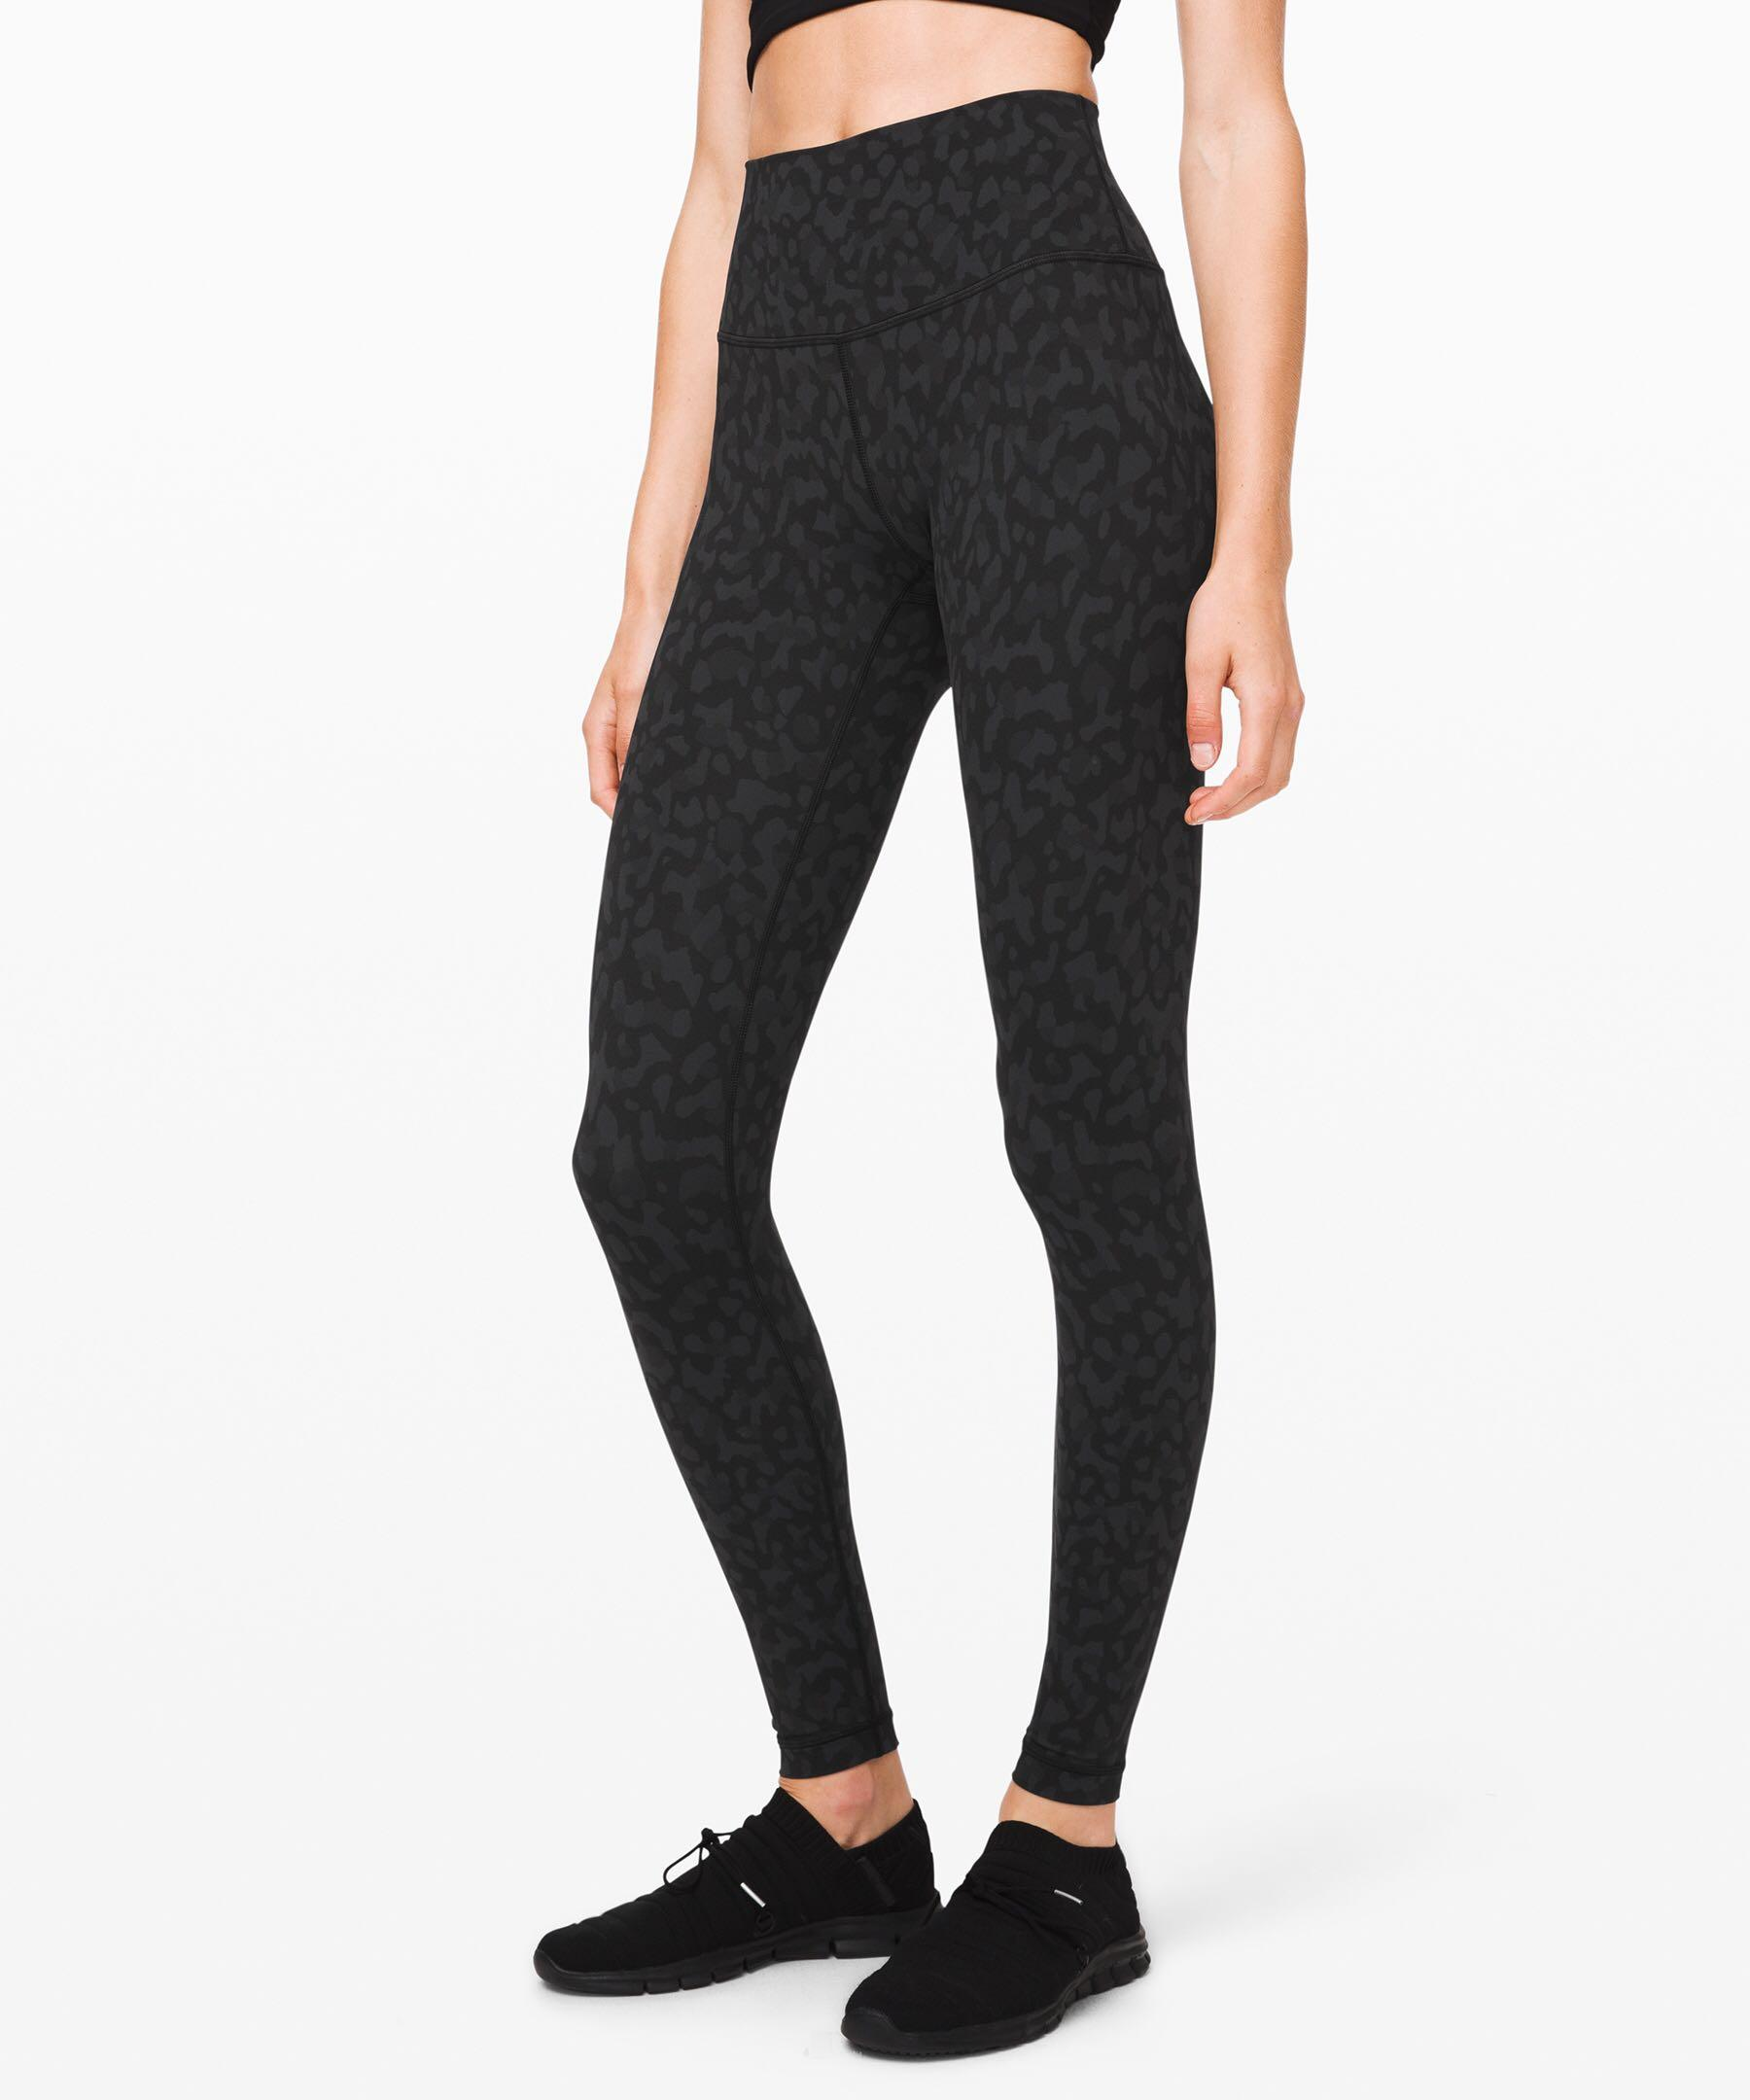 Lululemon Wunder Under High-Rise Leggings